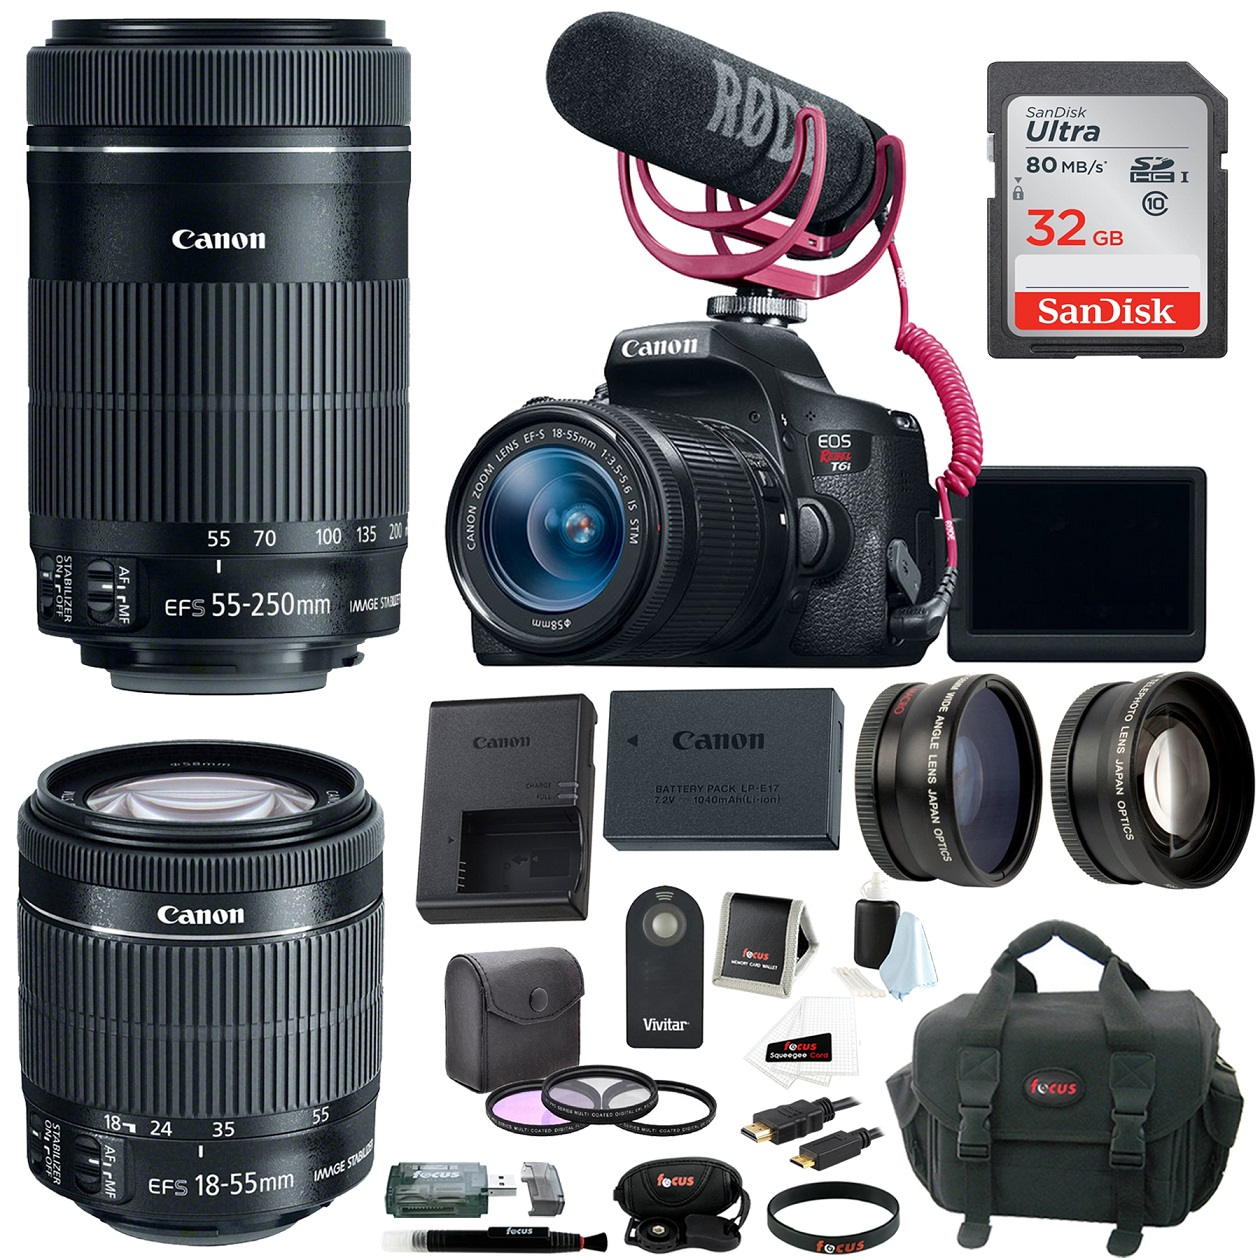 Canon EOS Rebel T6i DSLR Video Creator Kit with 18-55mm & 55-250mm Lenses plus 32GB SDHC Accessory Bundle